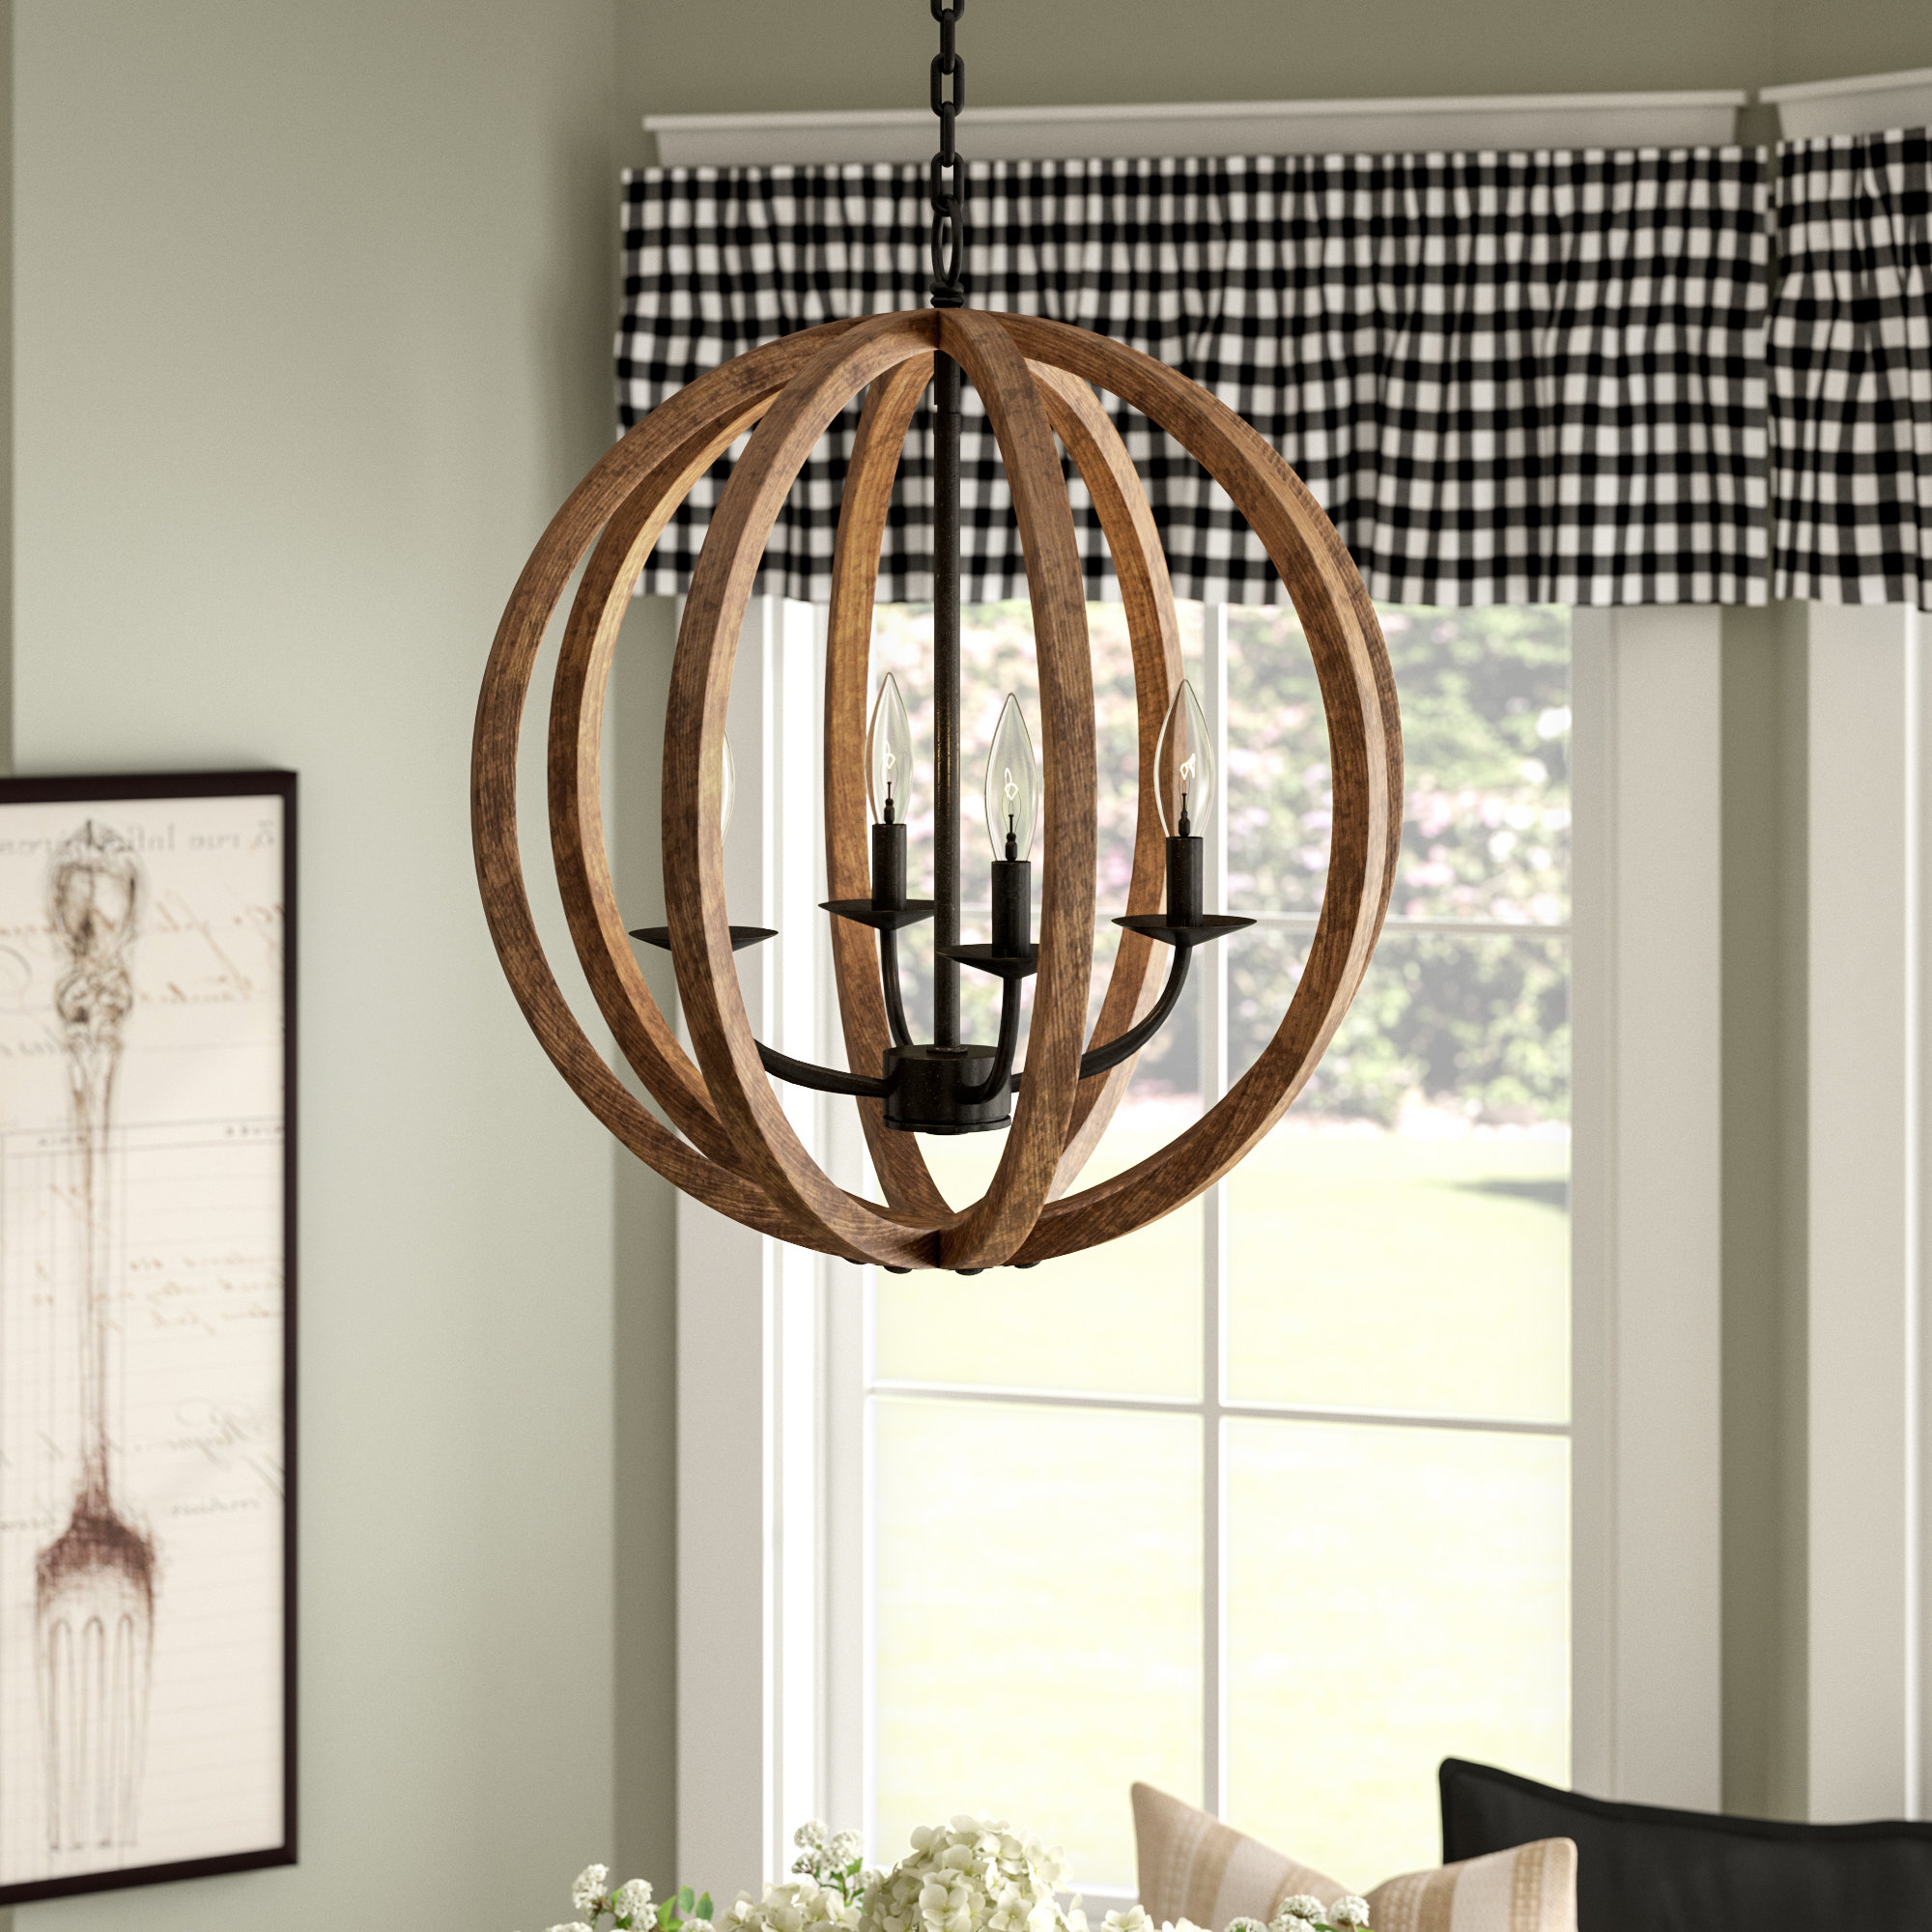 Ricciardo 4 Light Globe Chandeliers Regarding Popular Birch Lane Ricciardo 4 Light Globe Chandelier & Reviews (Gallery 1 of 20)